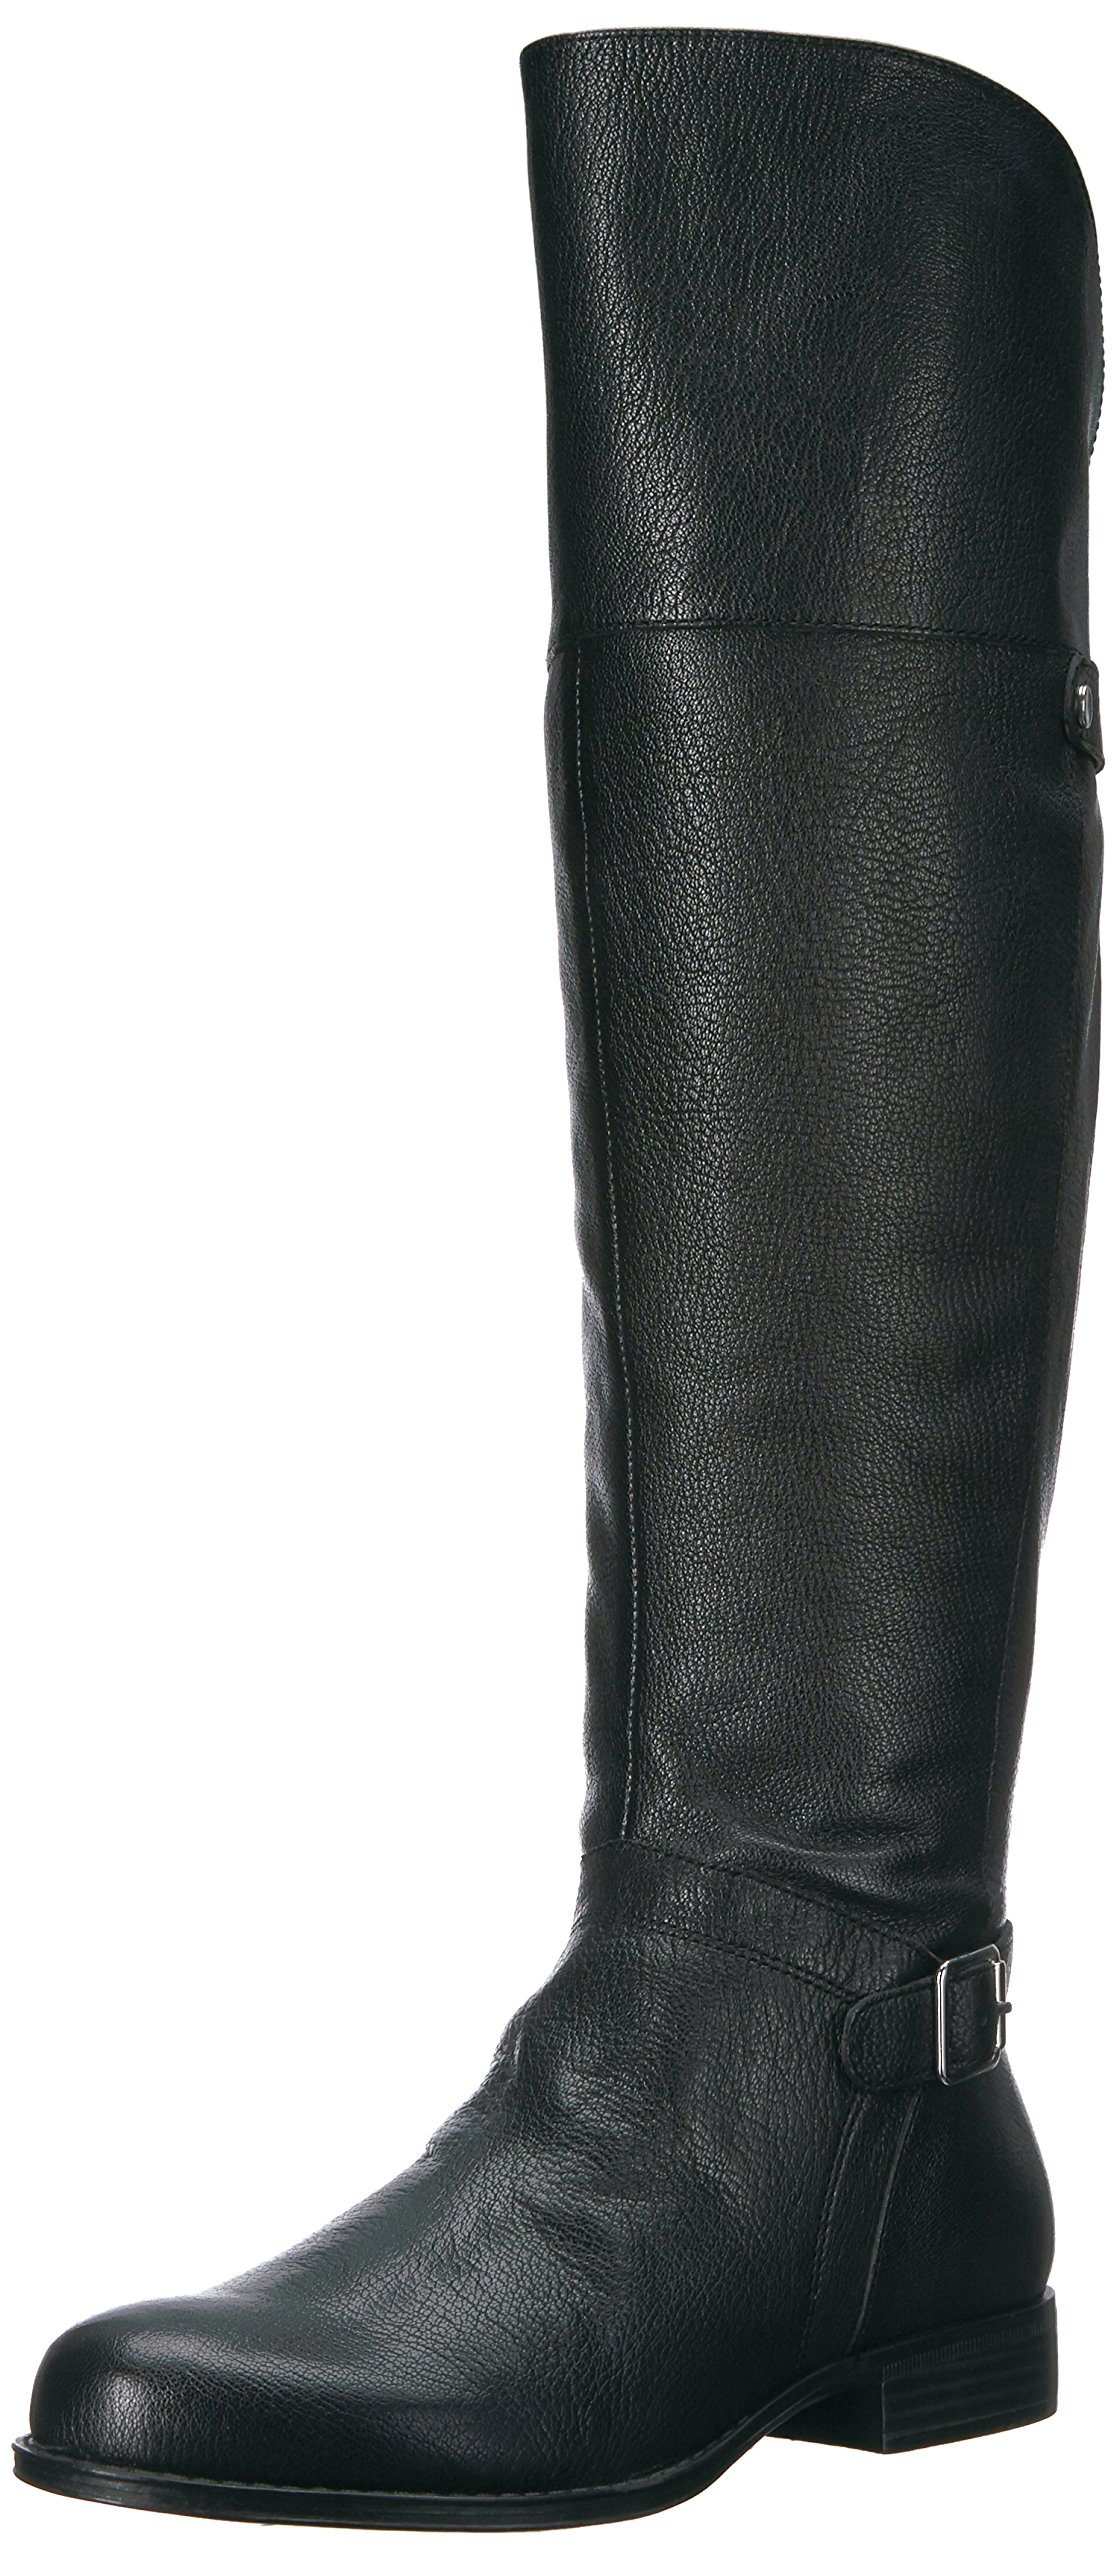 Naturalizer Women's January Riding Boot, Black, 11 M US